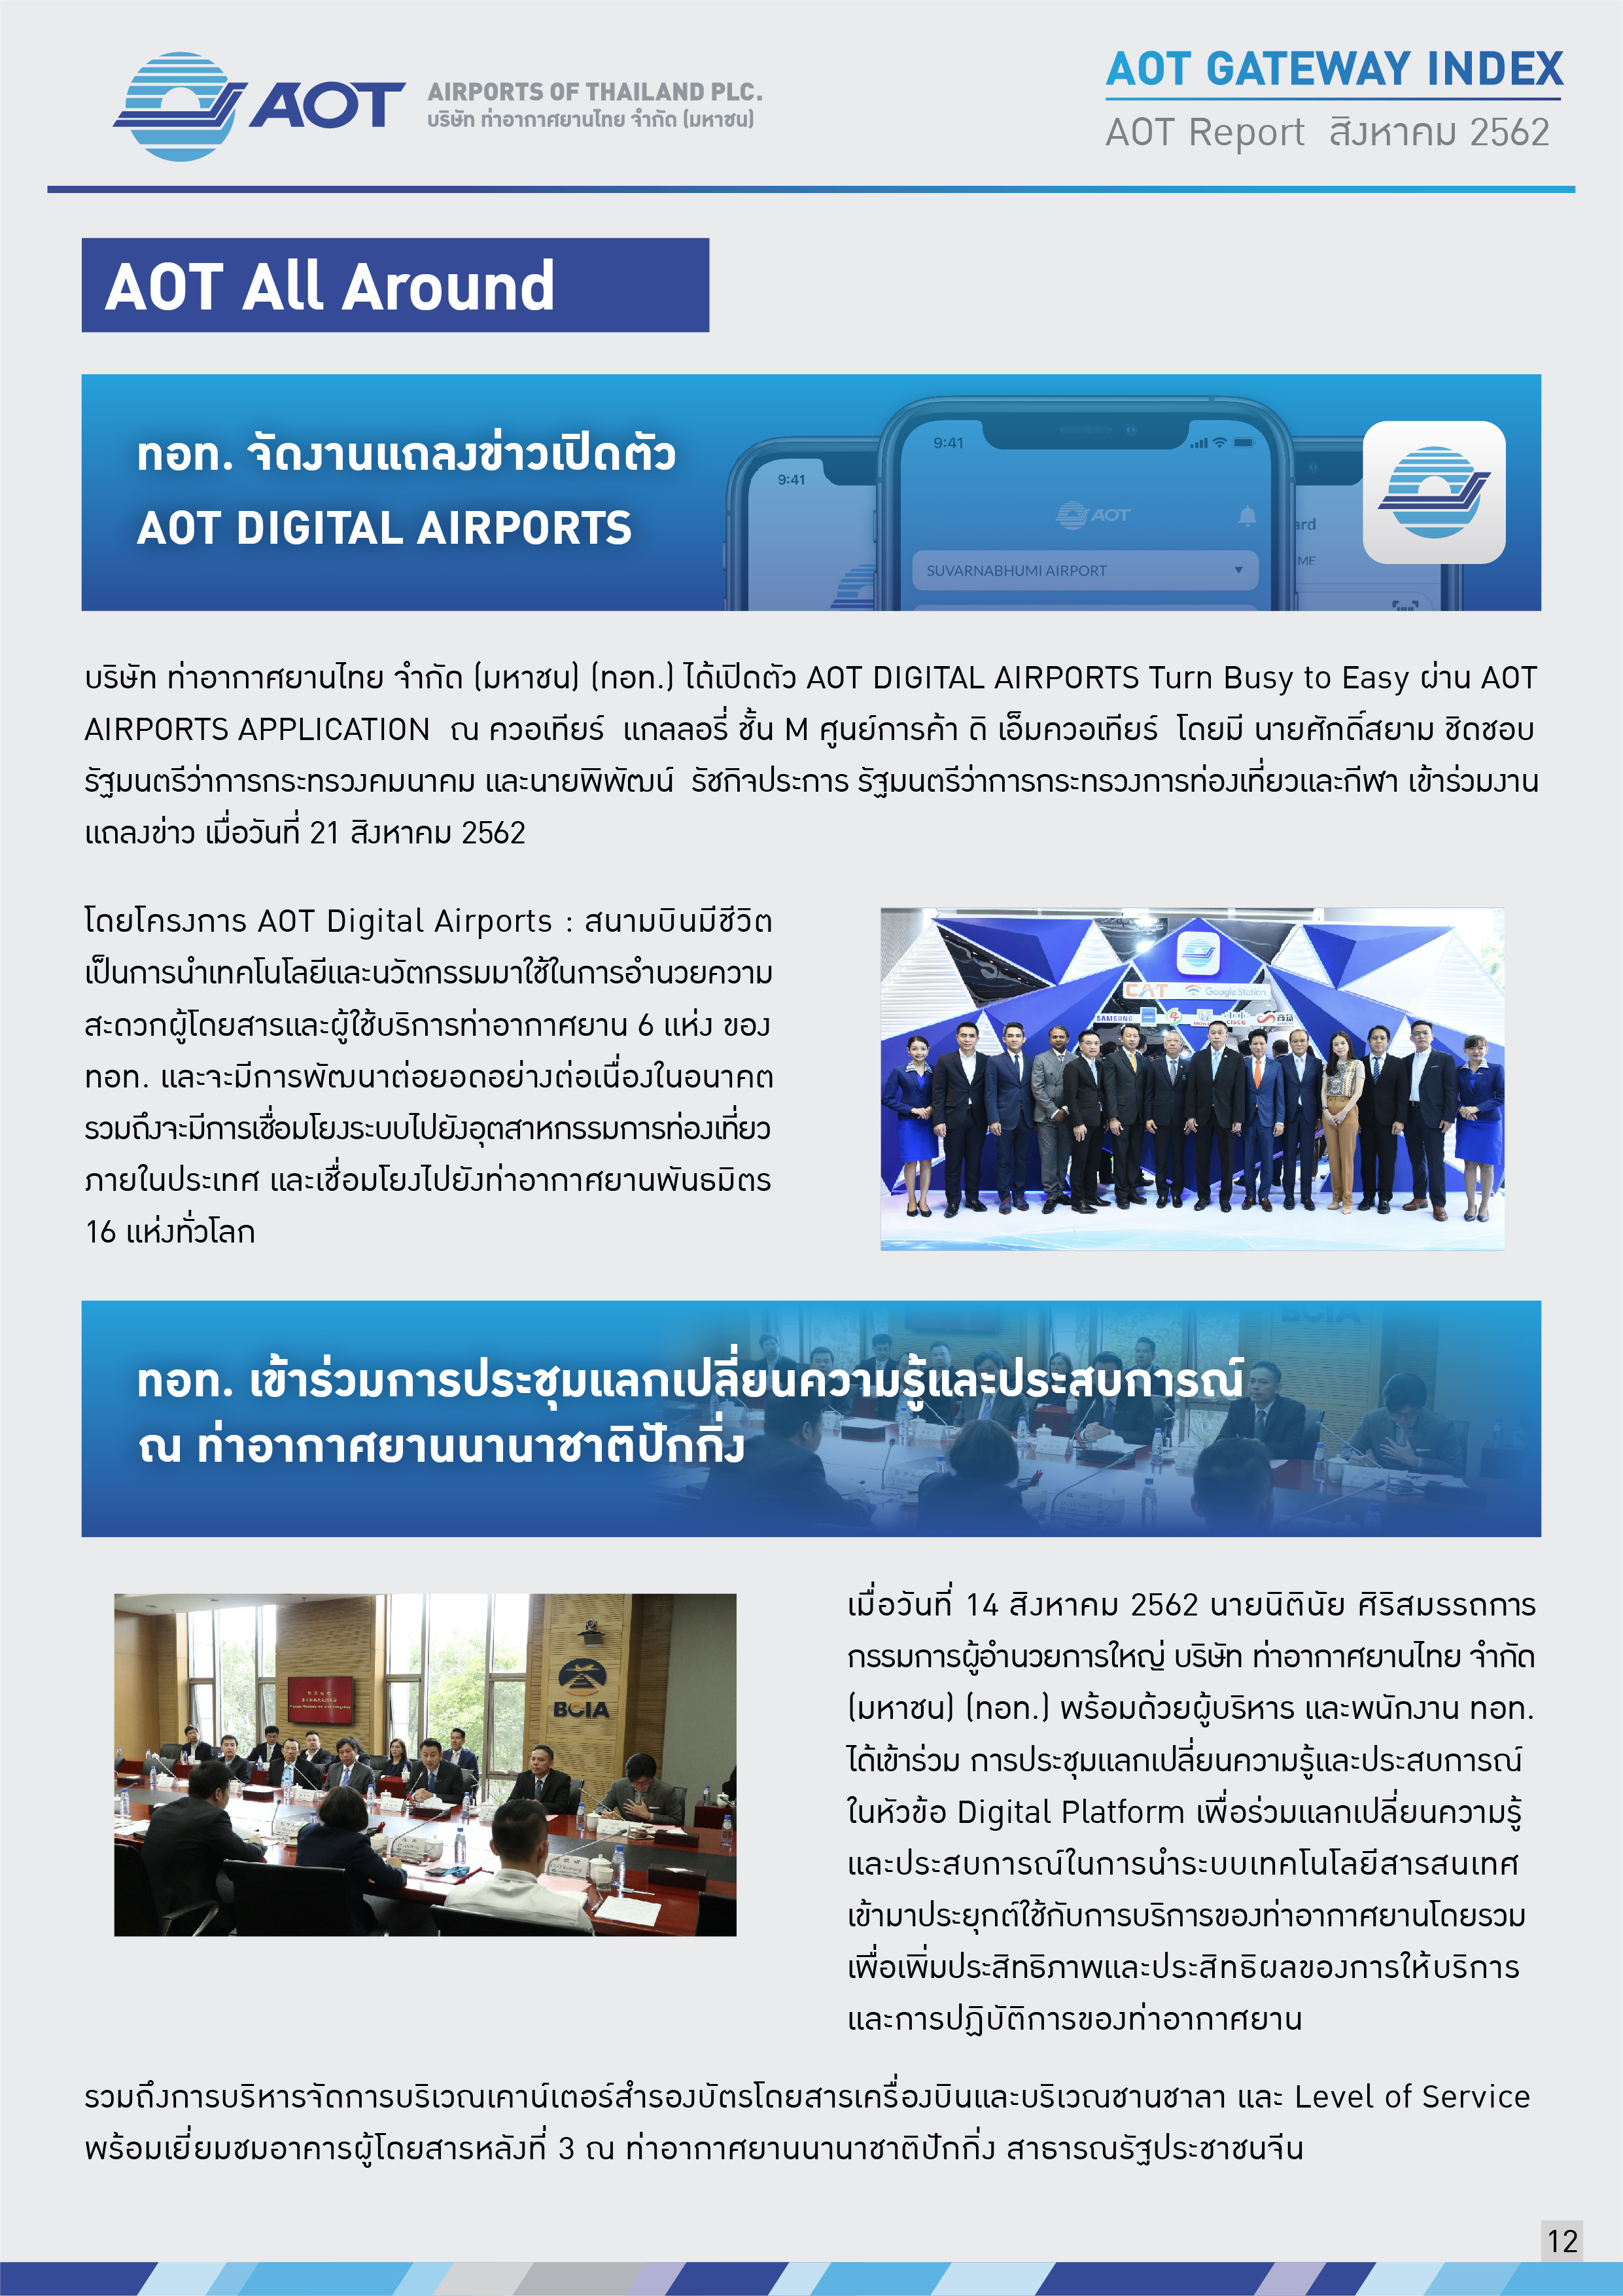 AOTcentent2019_Index 09_AOT เคียงคู่สังคม_V7_20191031_Page12